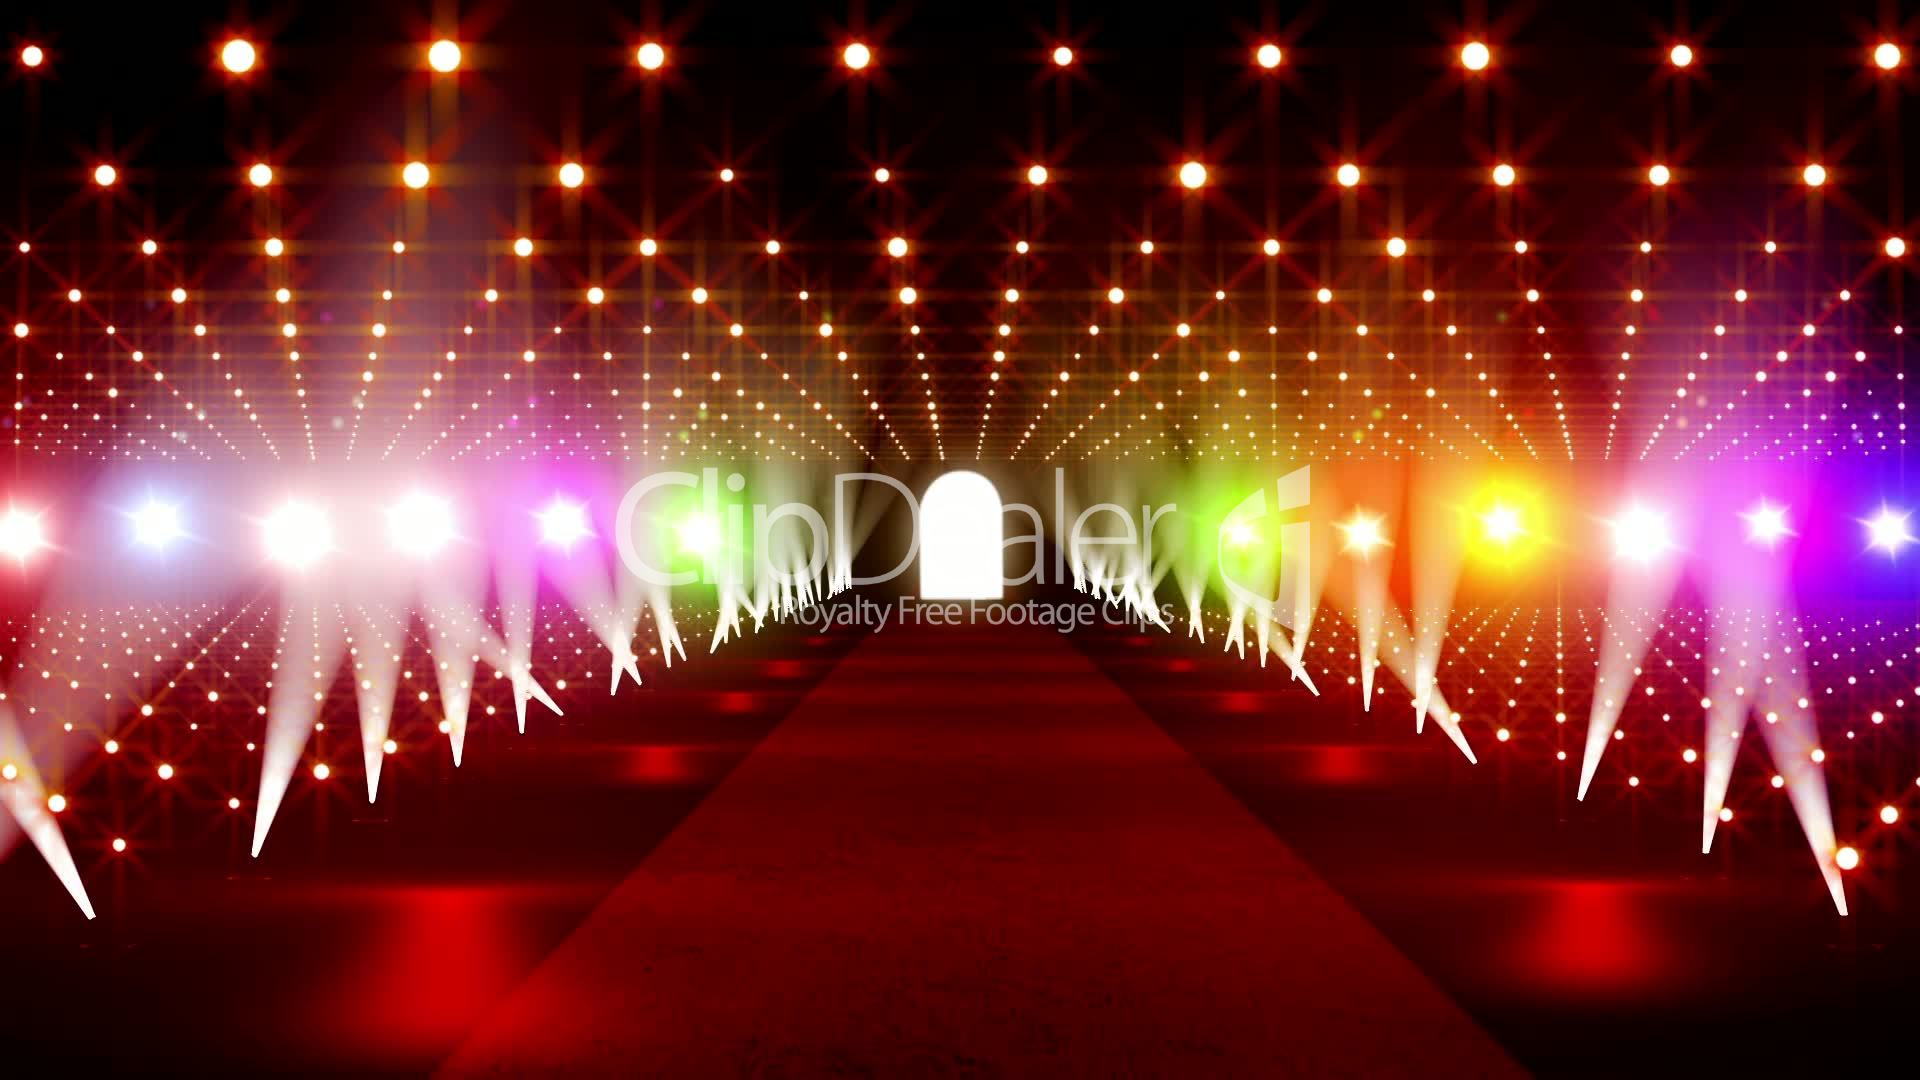 2–1564498-On The Red Carpet 18 colorful lights | New ...